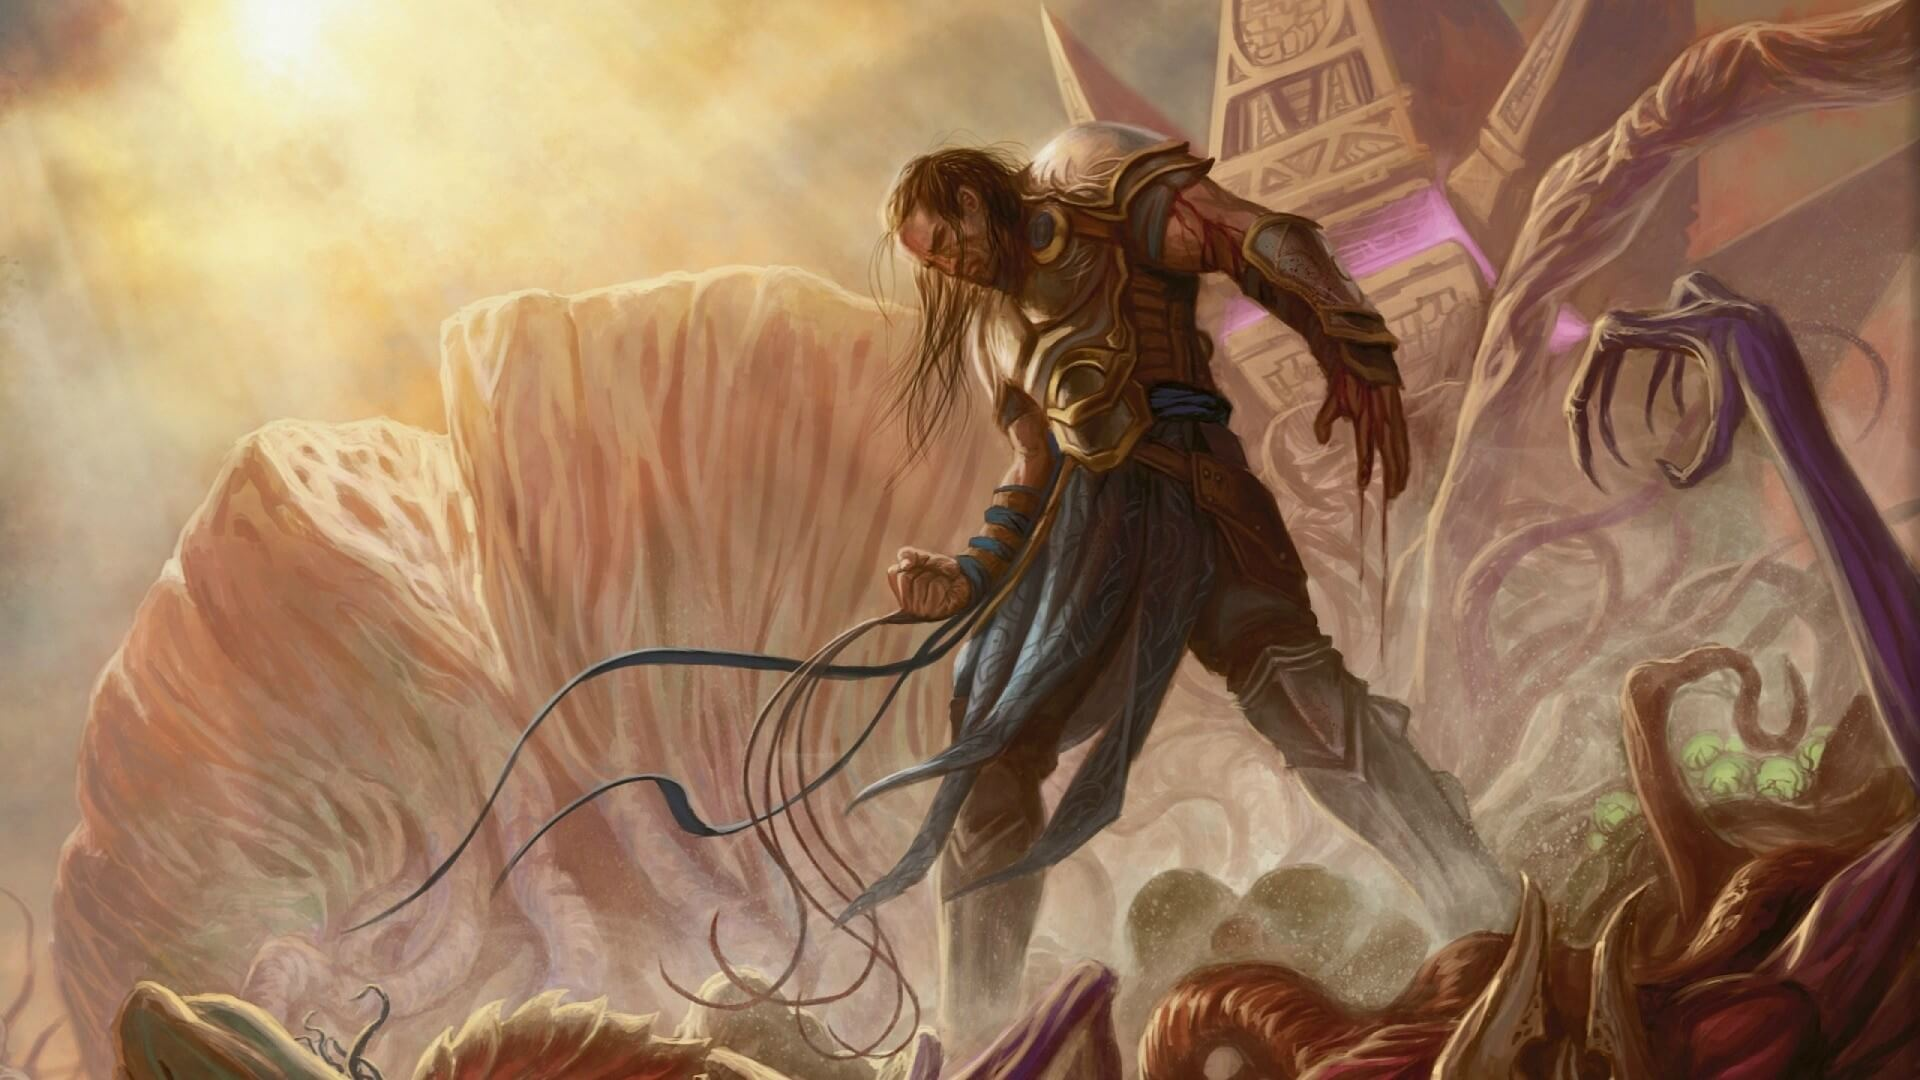 $75,000 Of Magic The Gathering Cards Stolen In Texas